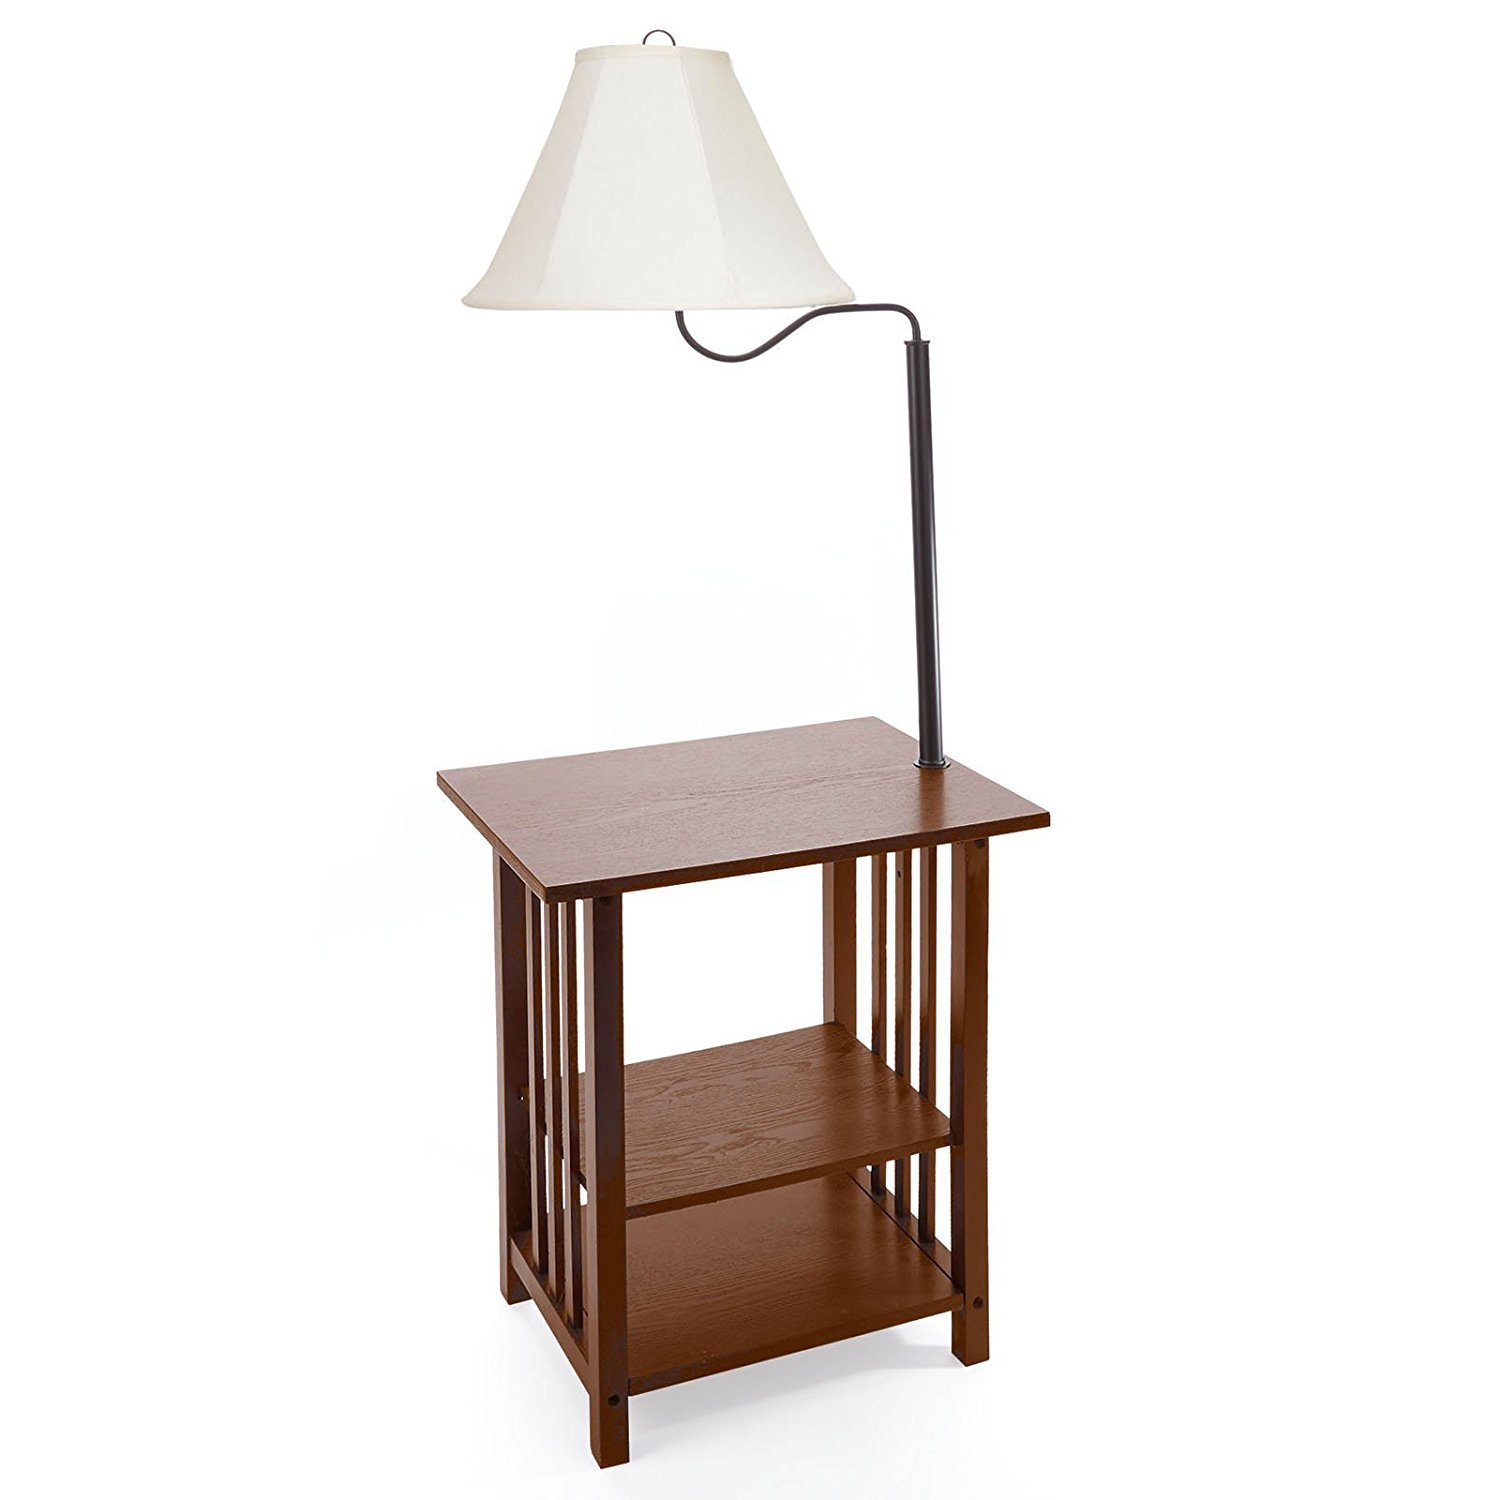 Lamp Table Combination, Floor Lamp Table with Shelves and Swing Arm, Magazine Rack Table with Lamp, Gorgeous End Table With Lamp, Elegant Floor Lamp with Attached End Table, Floor Lamp with Table